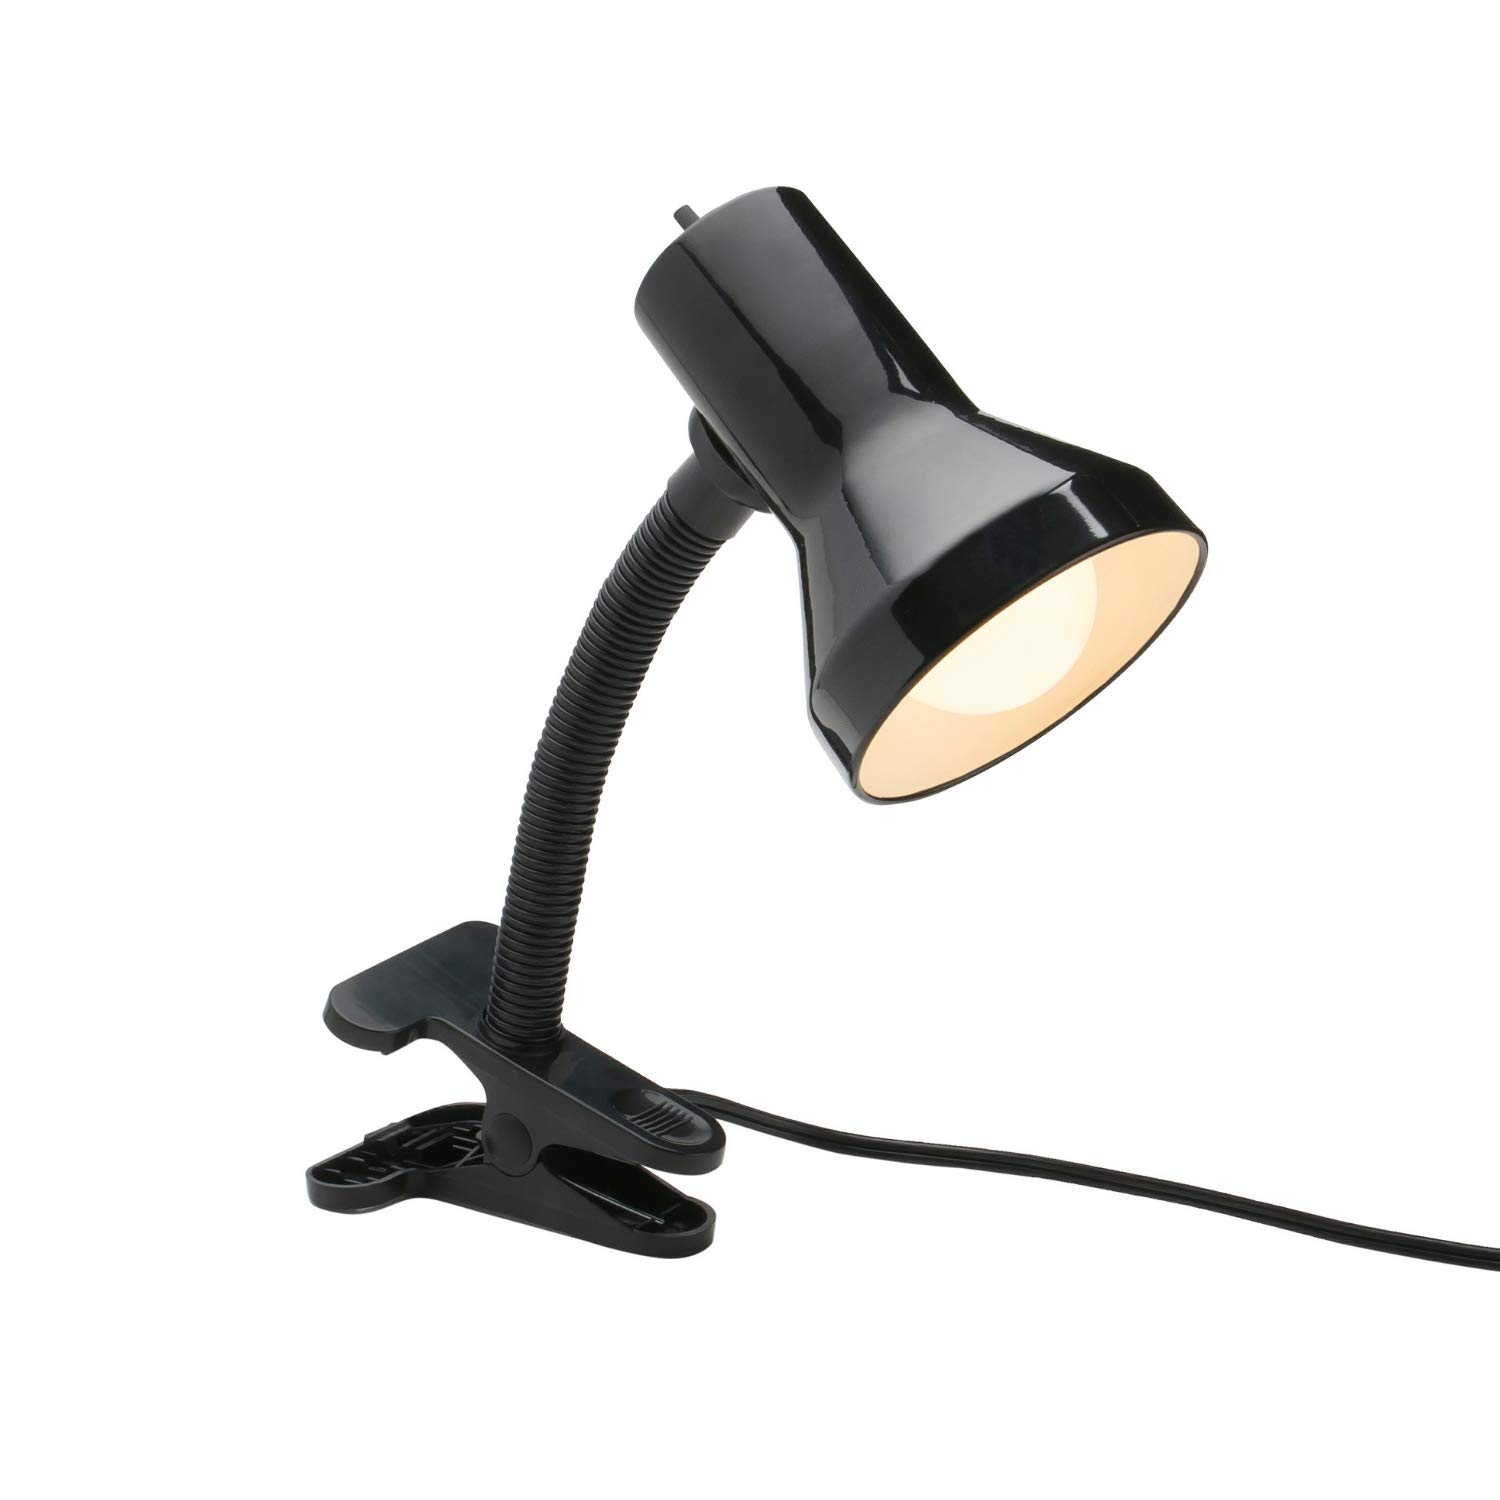 Xtricity Desk Lamp with Clamp Base and Adjustable Gooseneck, 7W A19 LED Bulb Included, 120 Volt, Convenient On Off Switch, 10.25 inches Tall 26cm , Black Finish